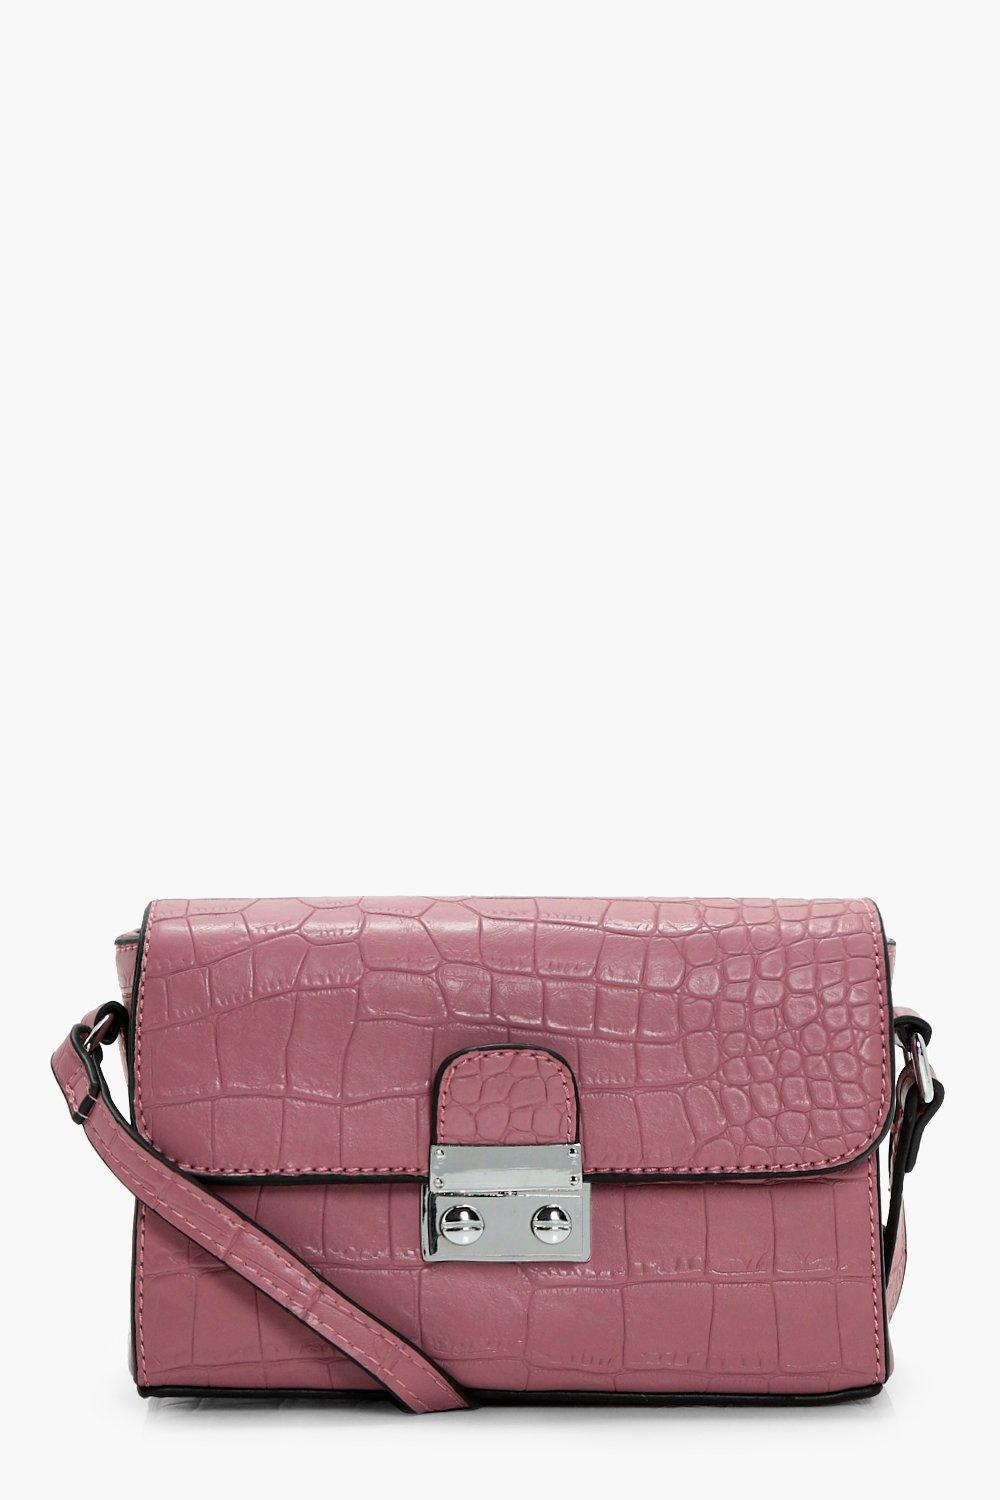 Croc & Lock Cross Body - pink - Chantelle Croc & L